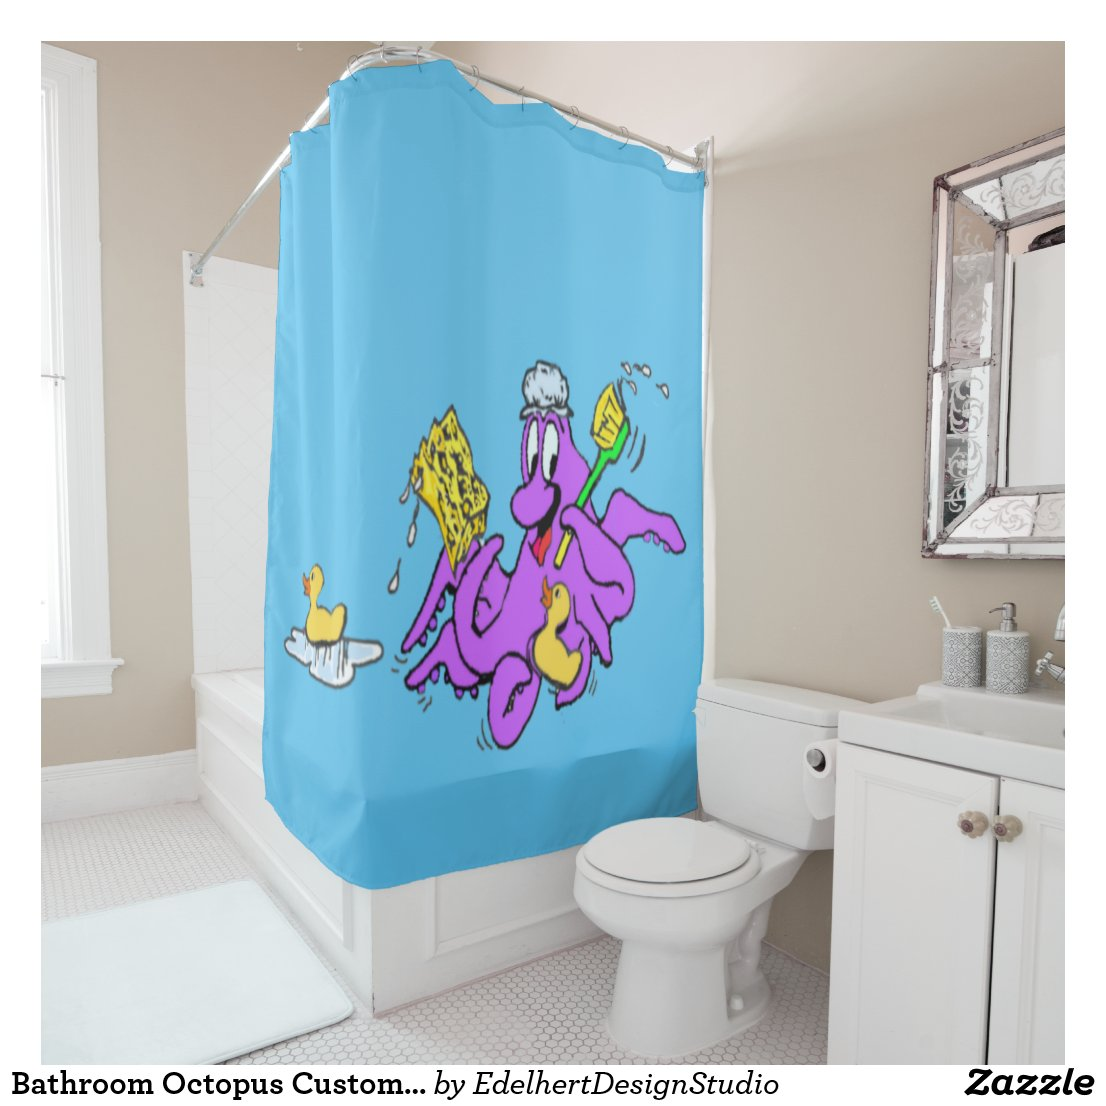 Bathroom Octopus Customizable Shower Curtain